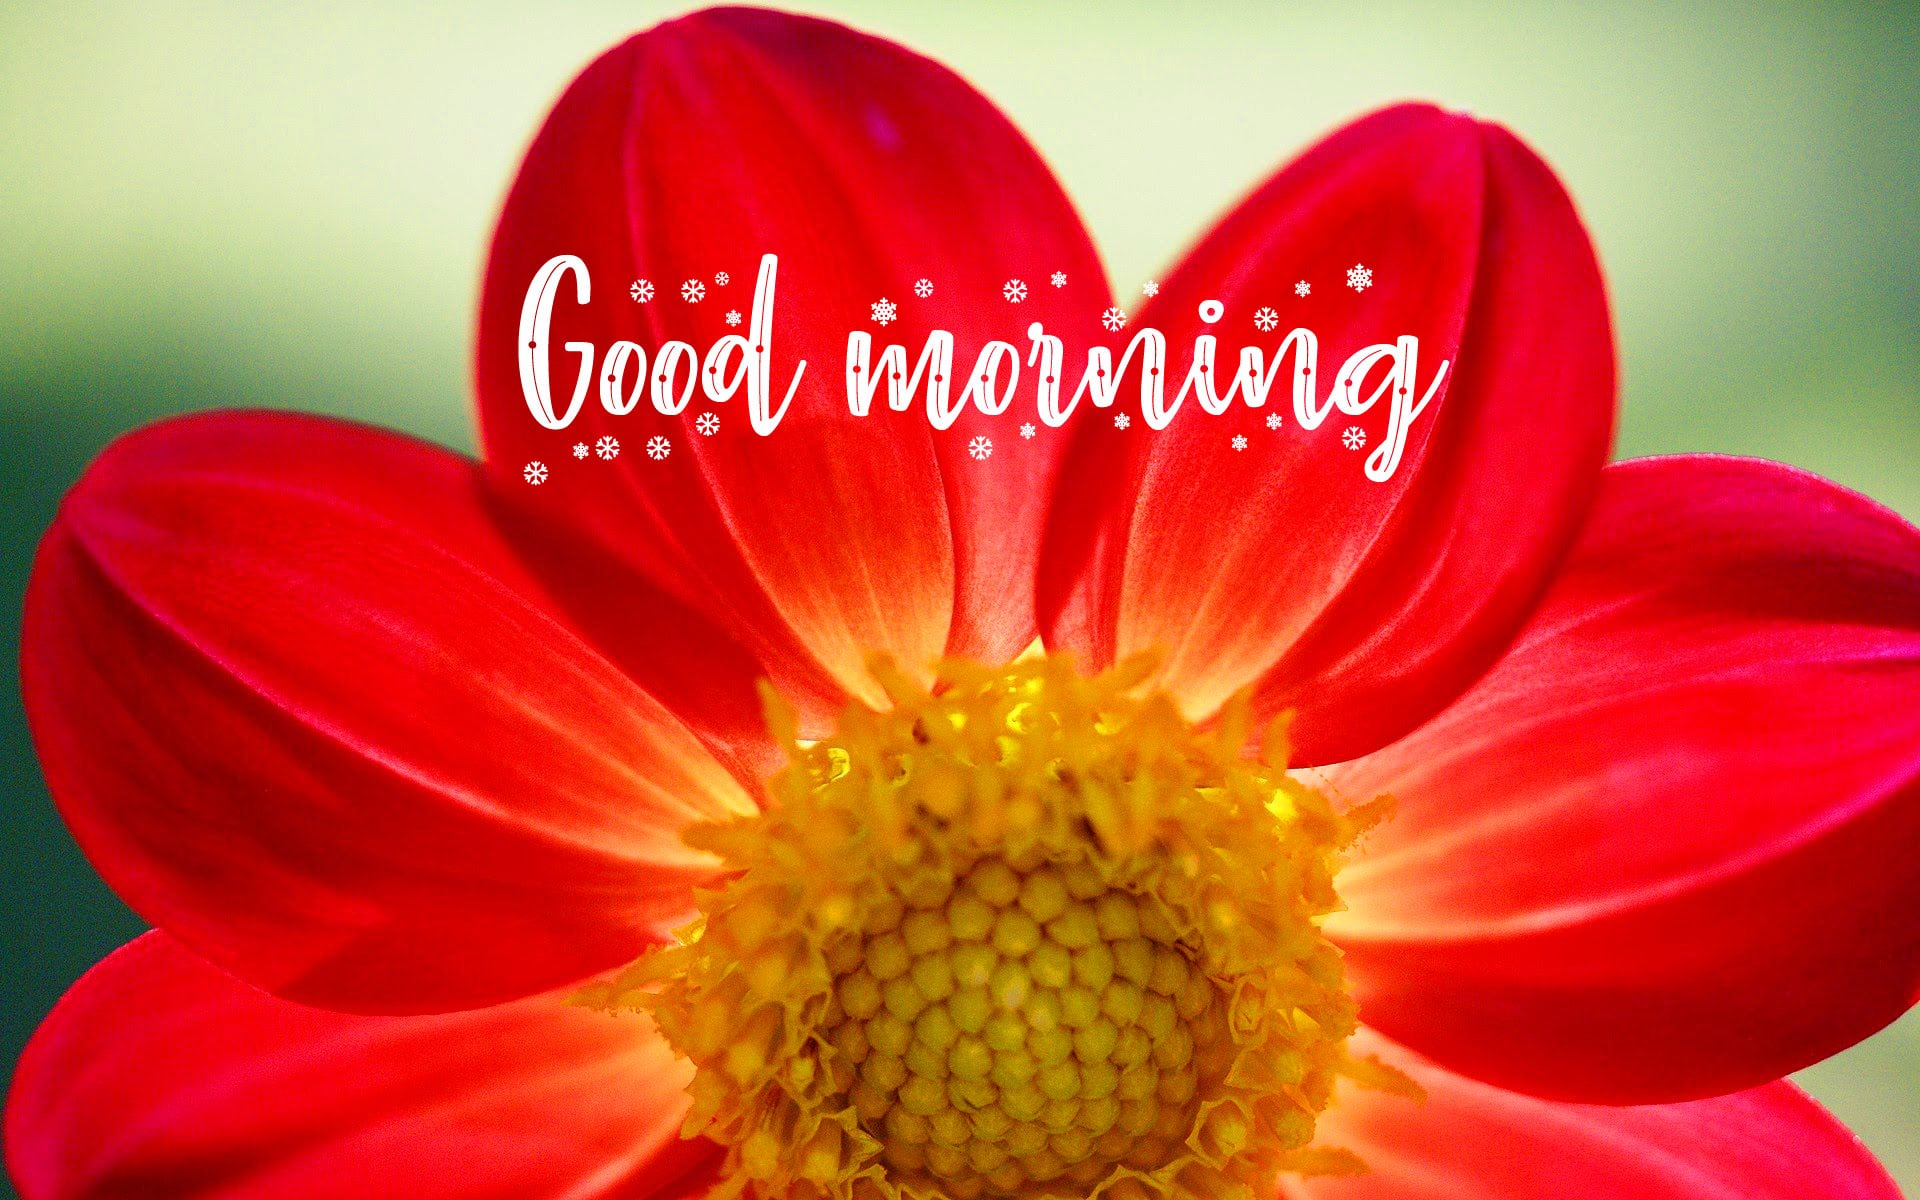 Flower Good Morning Wishes Images Pics Download 1